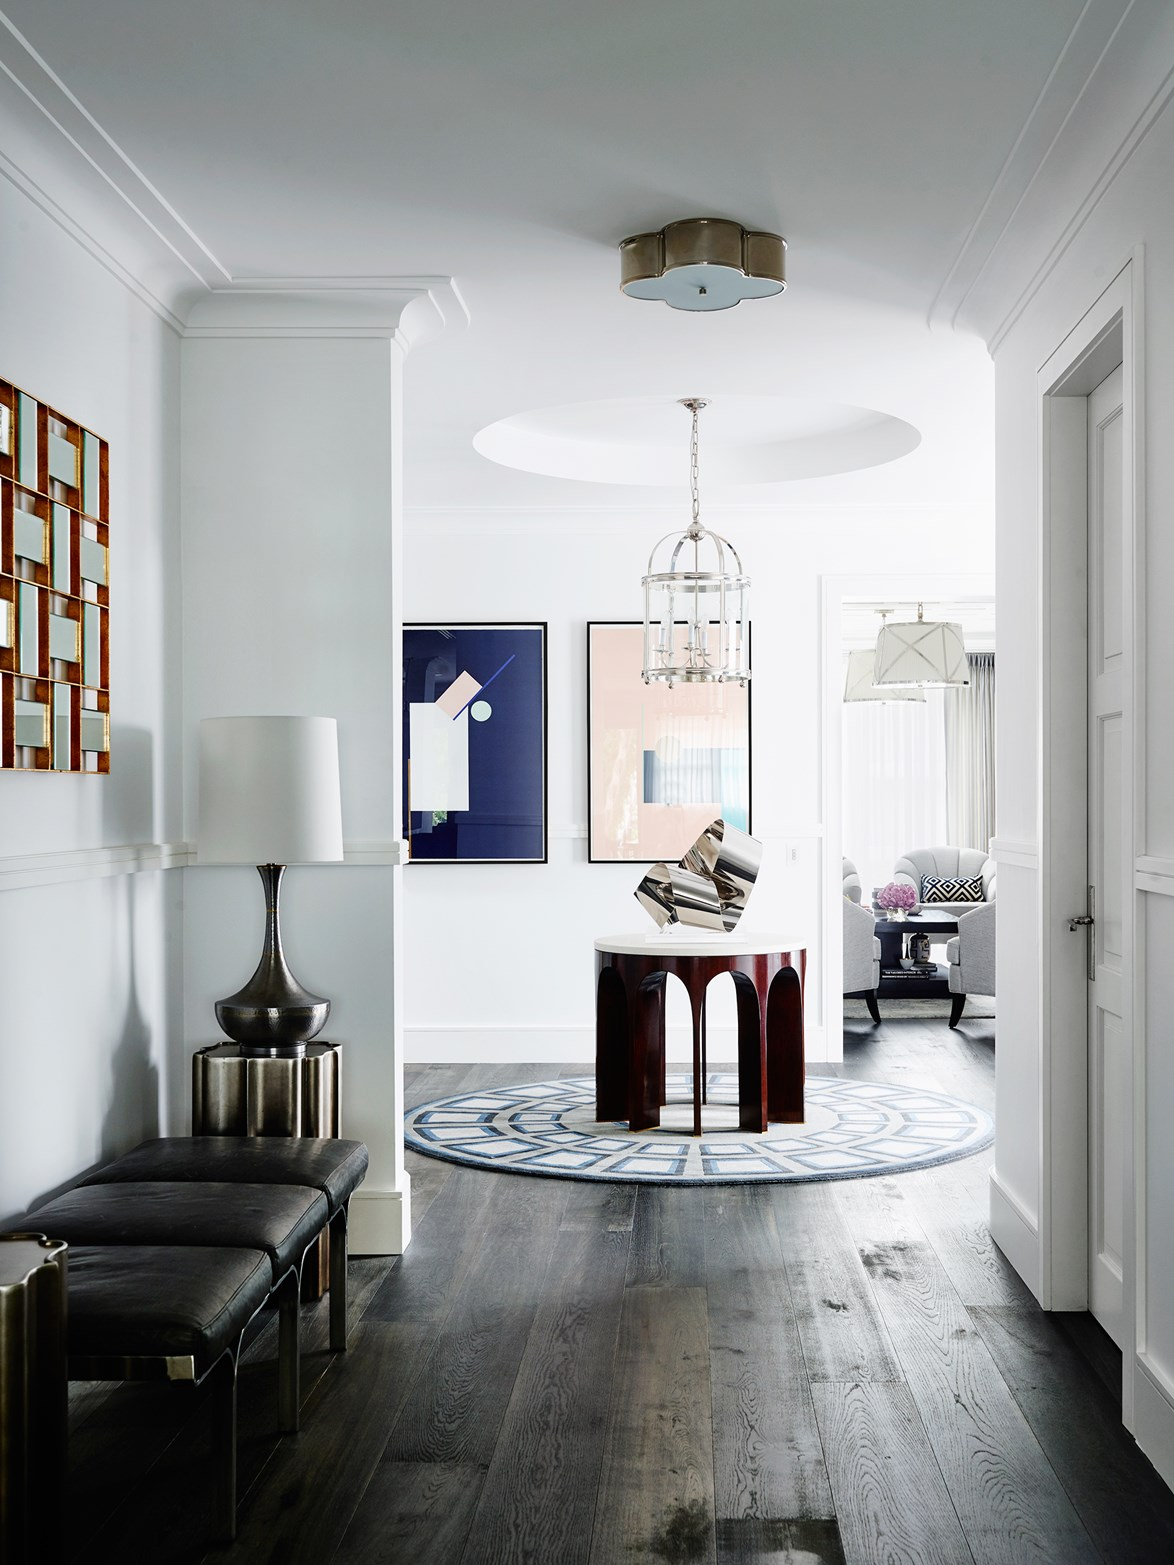 The entrance of a home designed by Greg Natale which has an art gallery feel, with art deco inspired metal artworks and furniture on display. *Photo: Anson Smart*